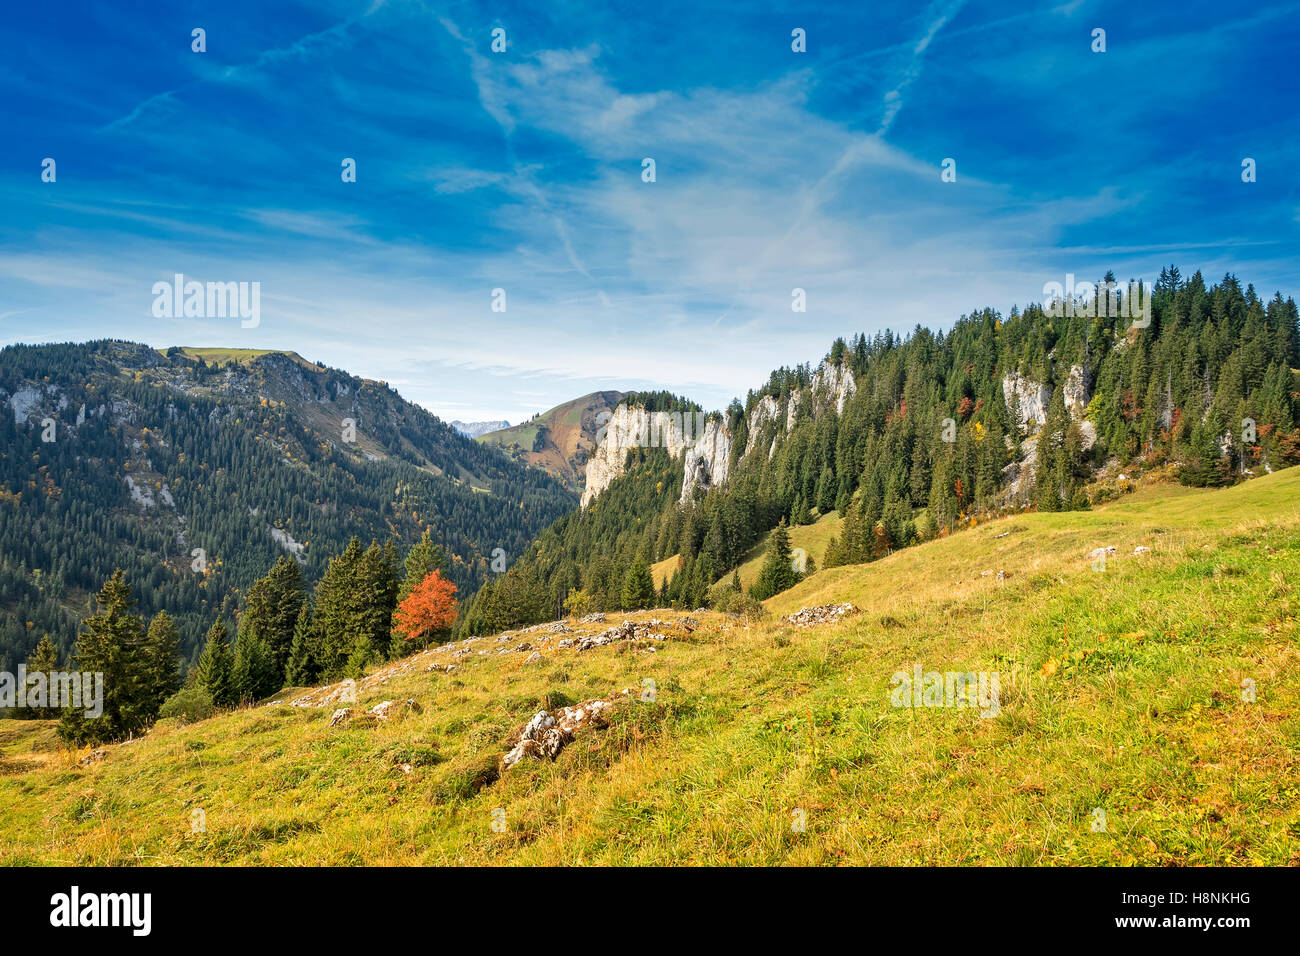 View over rural alpine mounlandscape in fall, Austrian alps, Zillertal Stock Photo